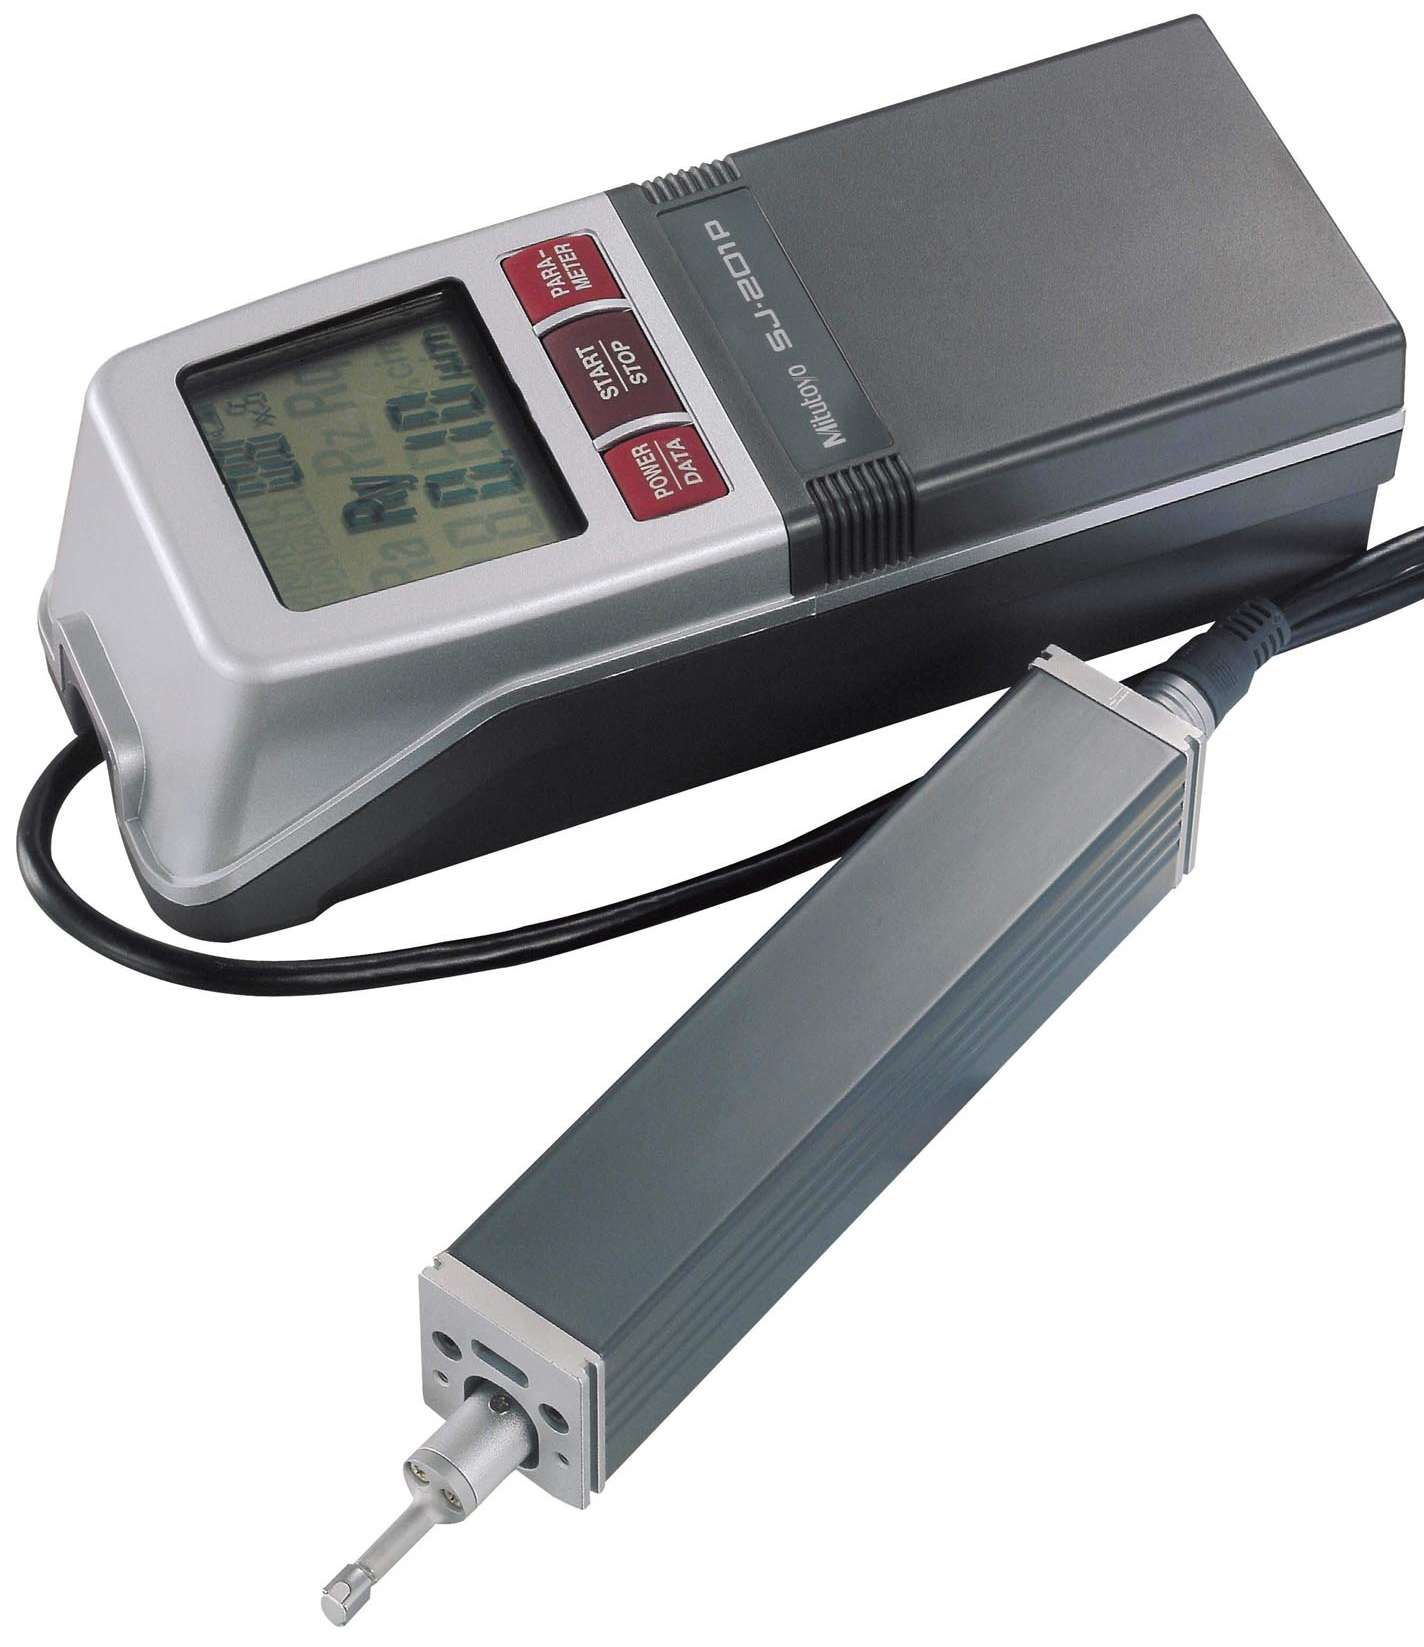 mitutoyo surface roughness tester sj 210 manual